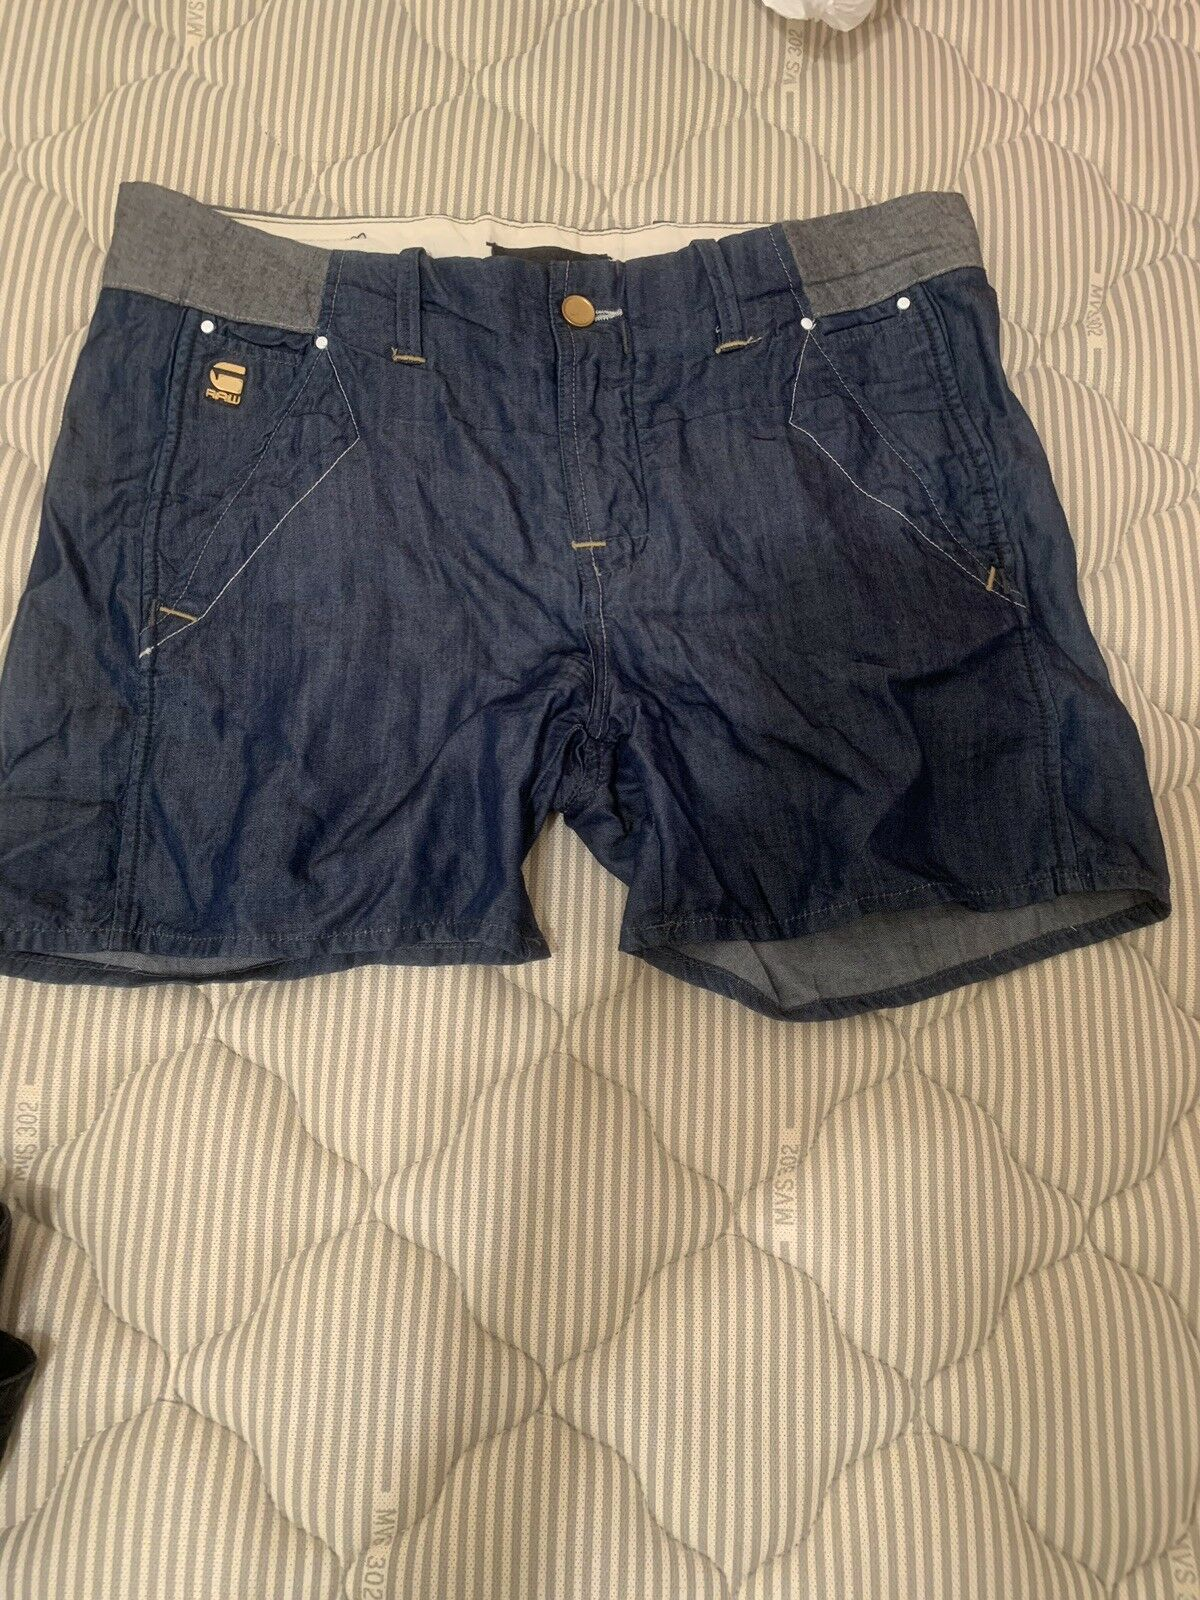 G star raw shorts women